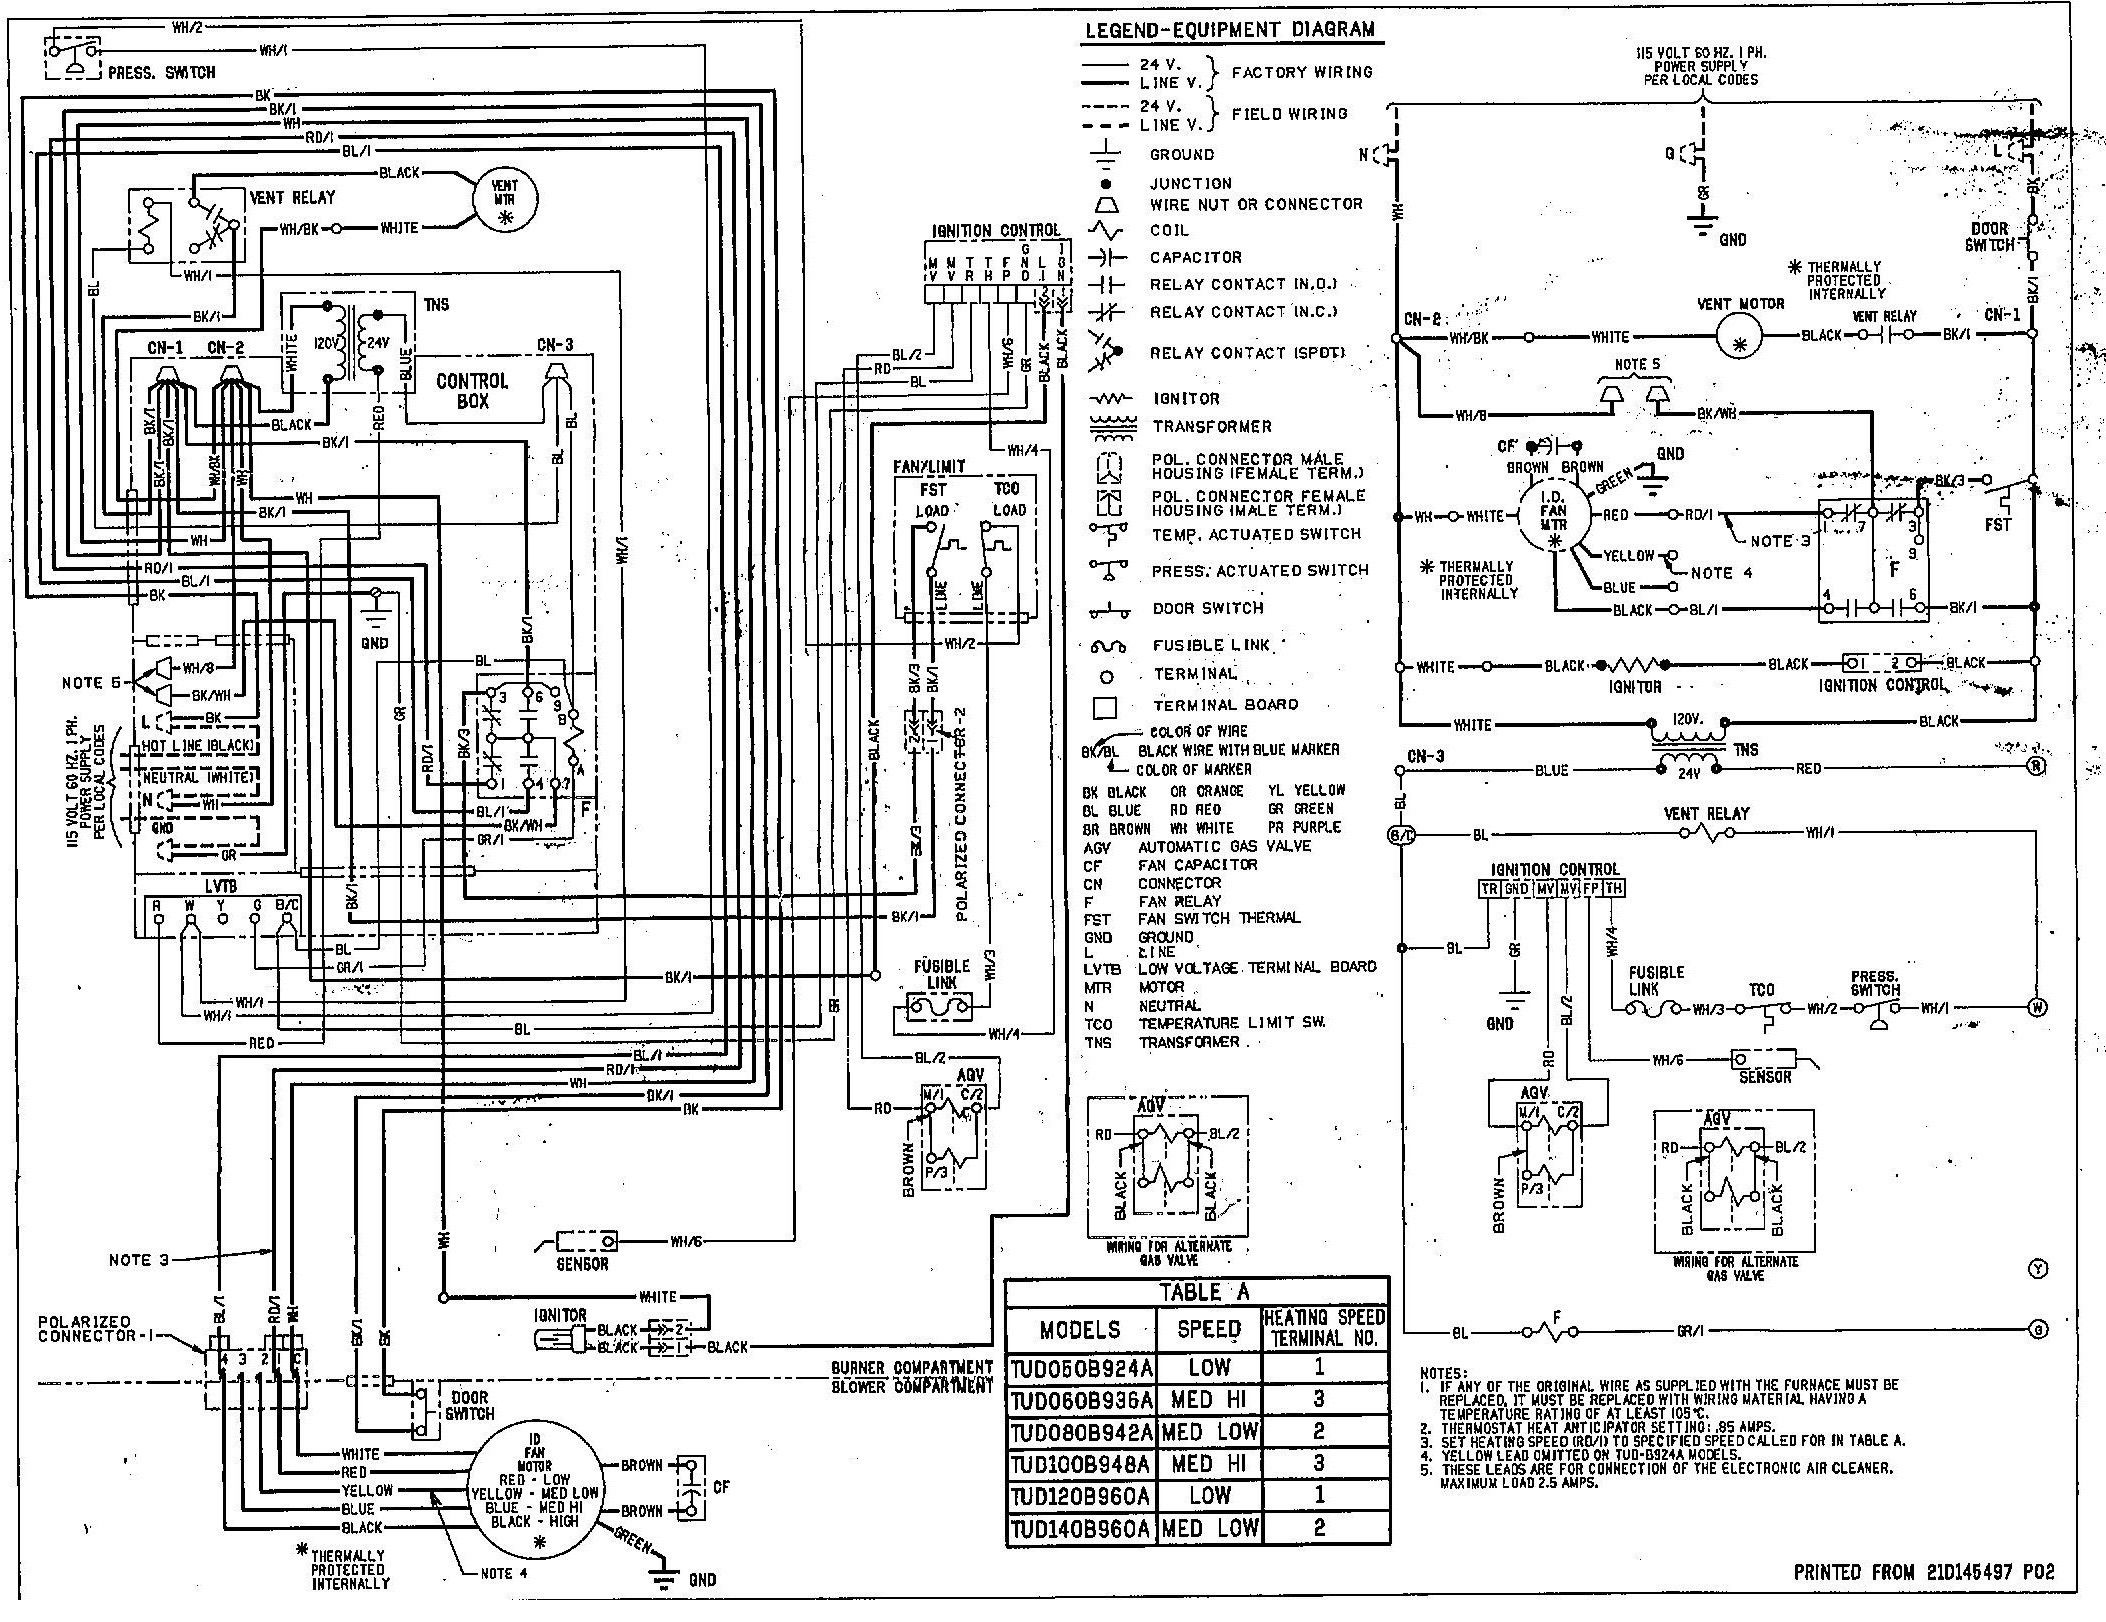 Reznor Heater Wiring Diagram In 2020 Electric Furnace Thermostat Wiring Heat Pump